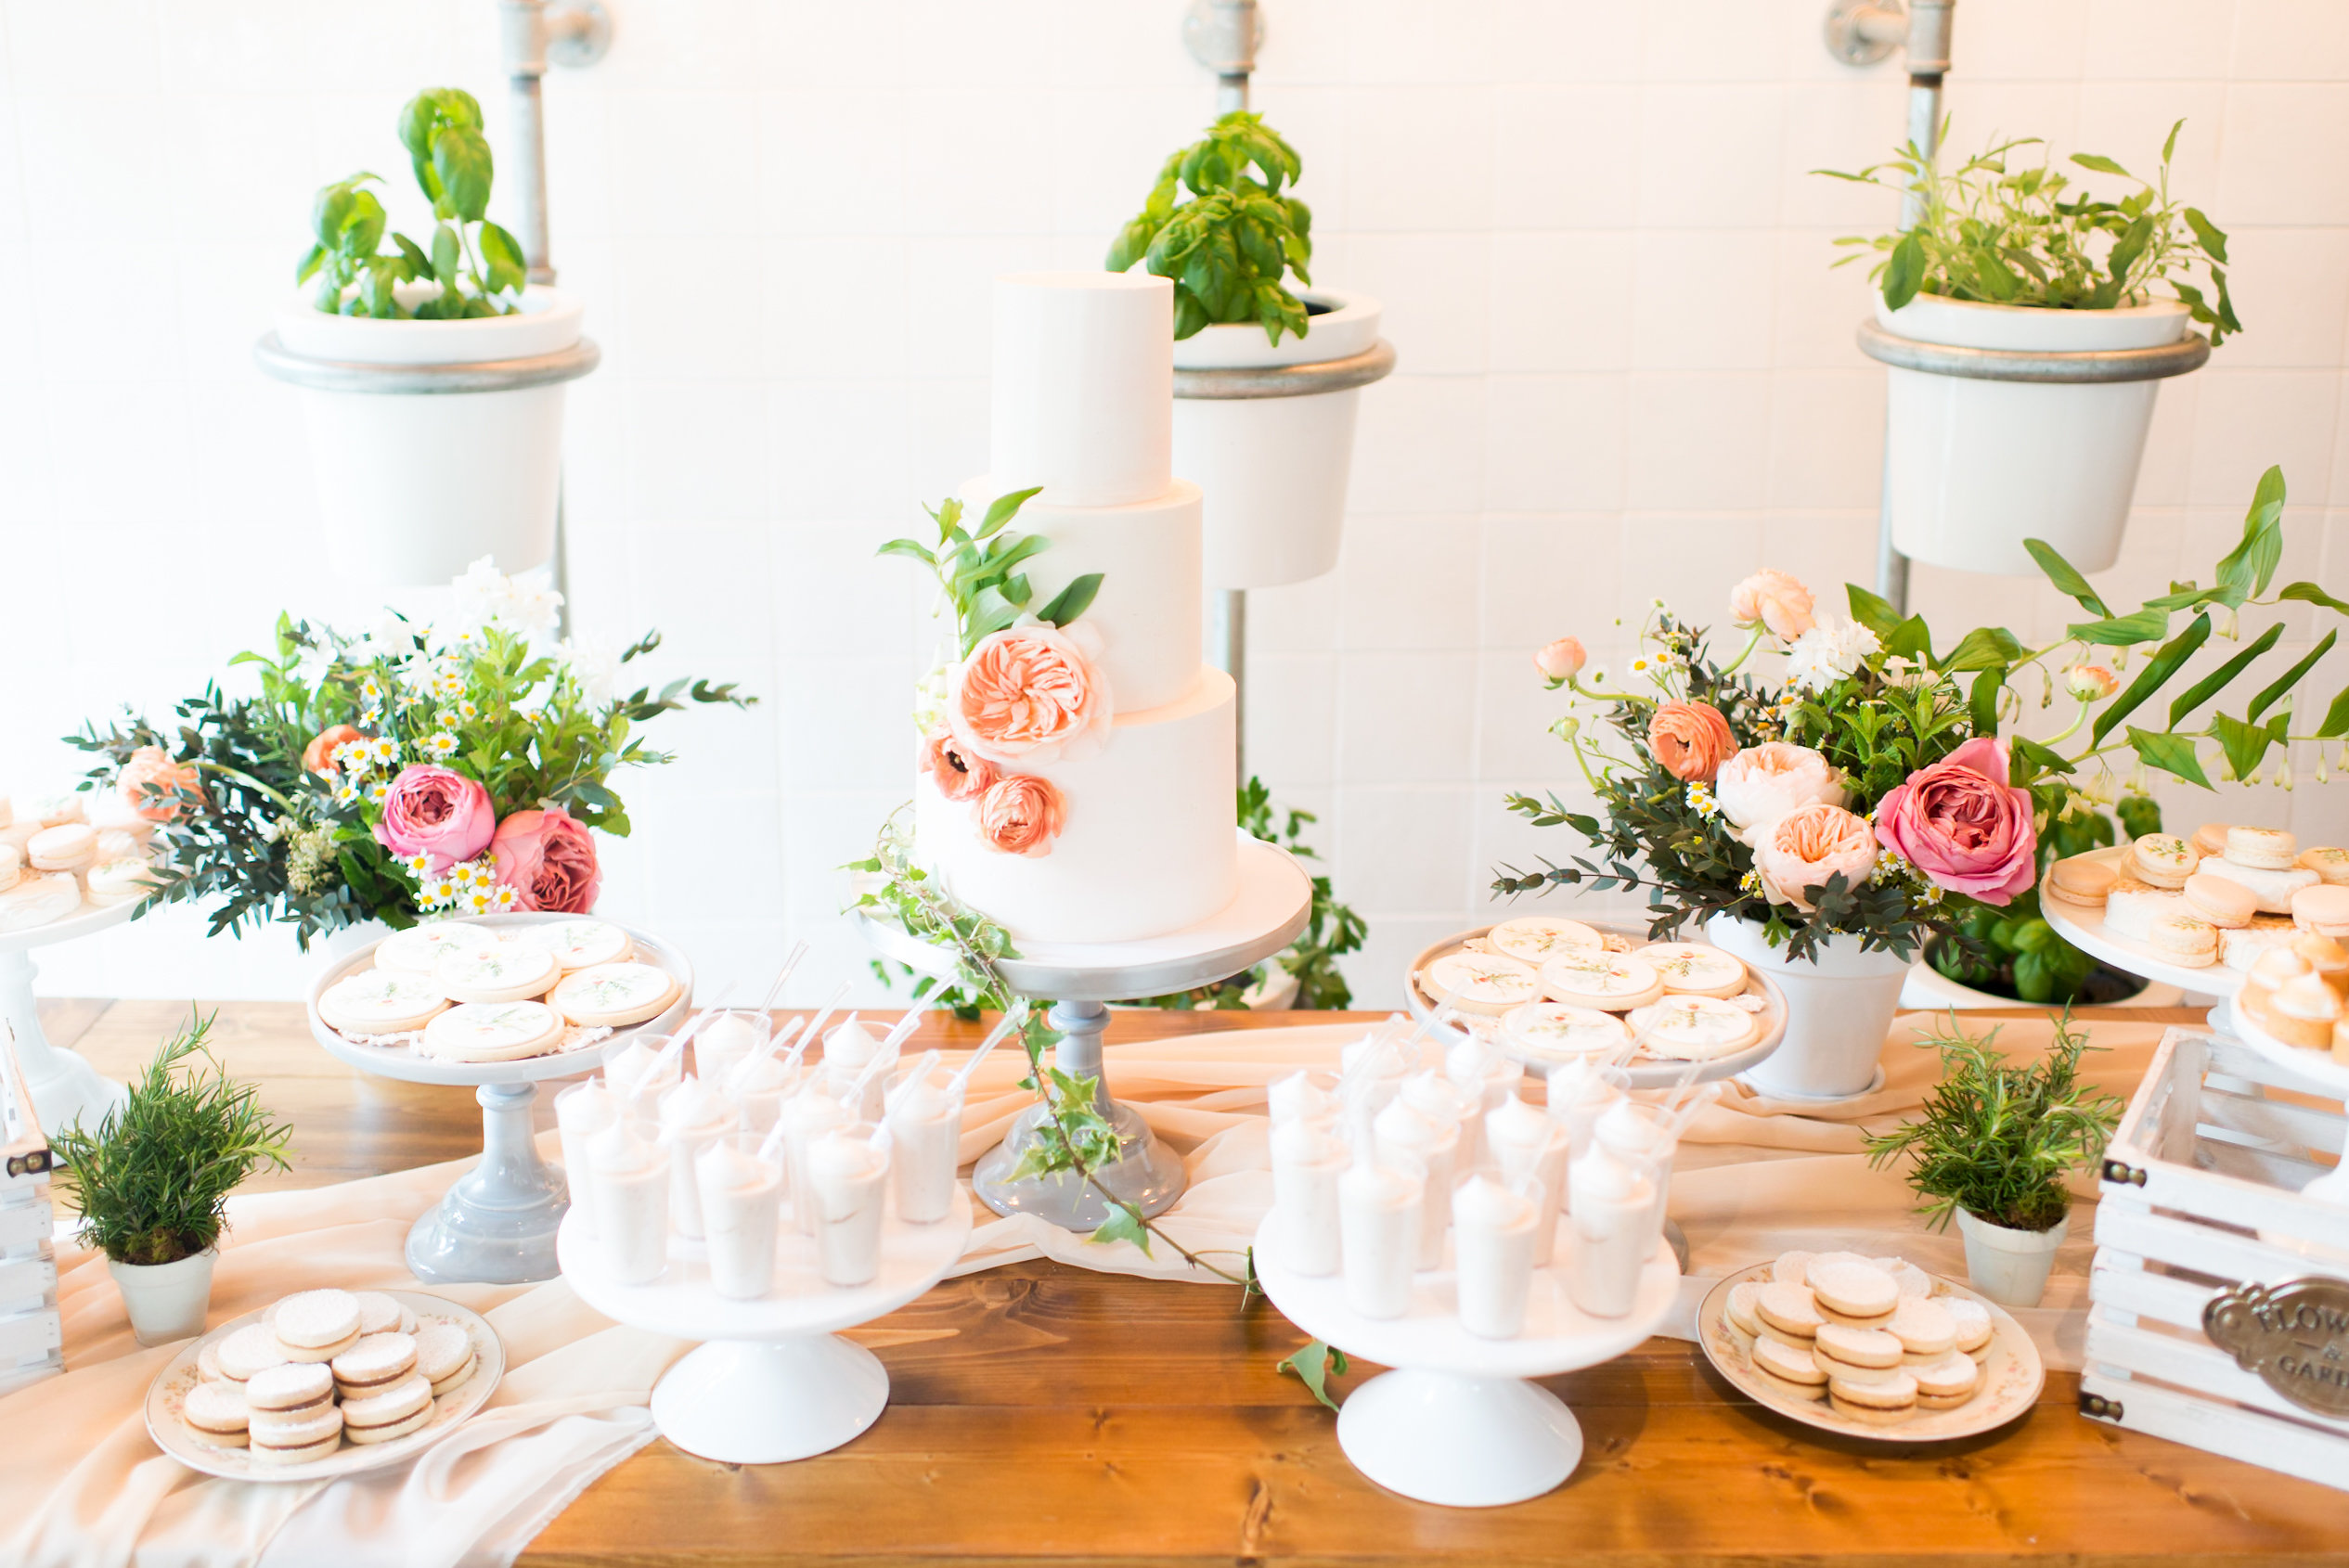 EARTHY BABY SHOWER AT FI'LIA RESTAURANT - Top It Off Designs